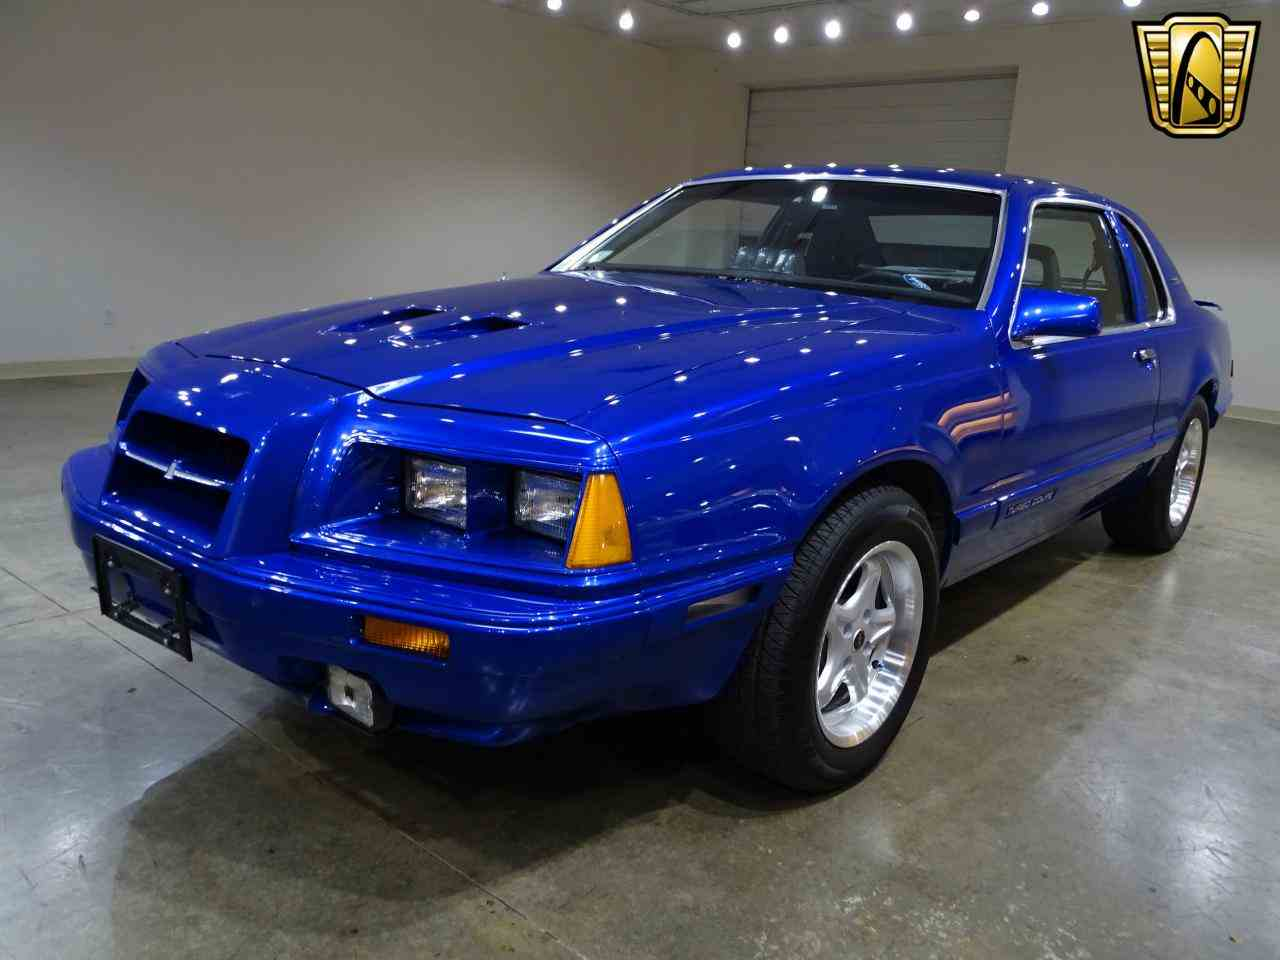 Large Picture of 1984 Ford Thunderbird - $8,995.00 - MFDZ